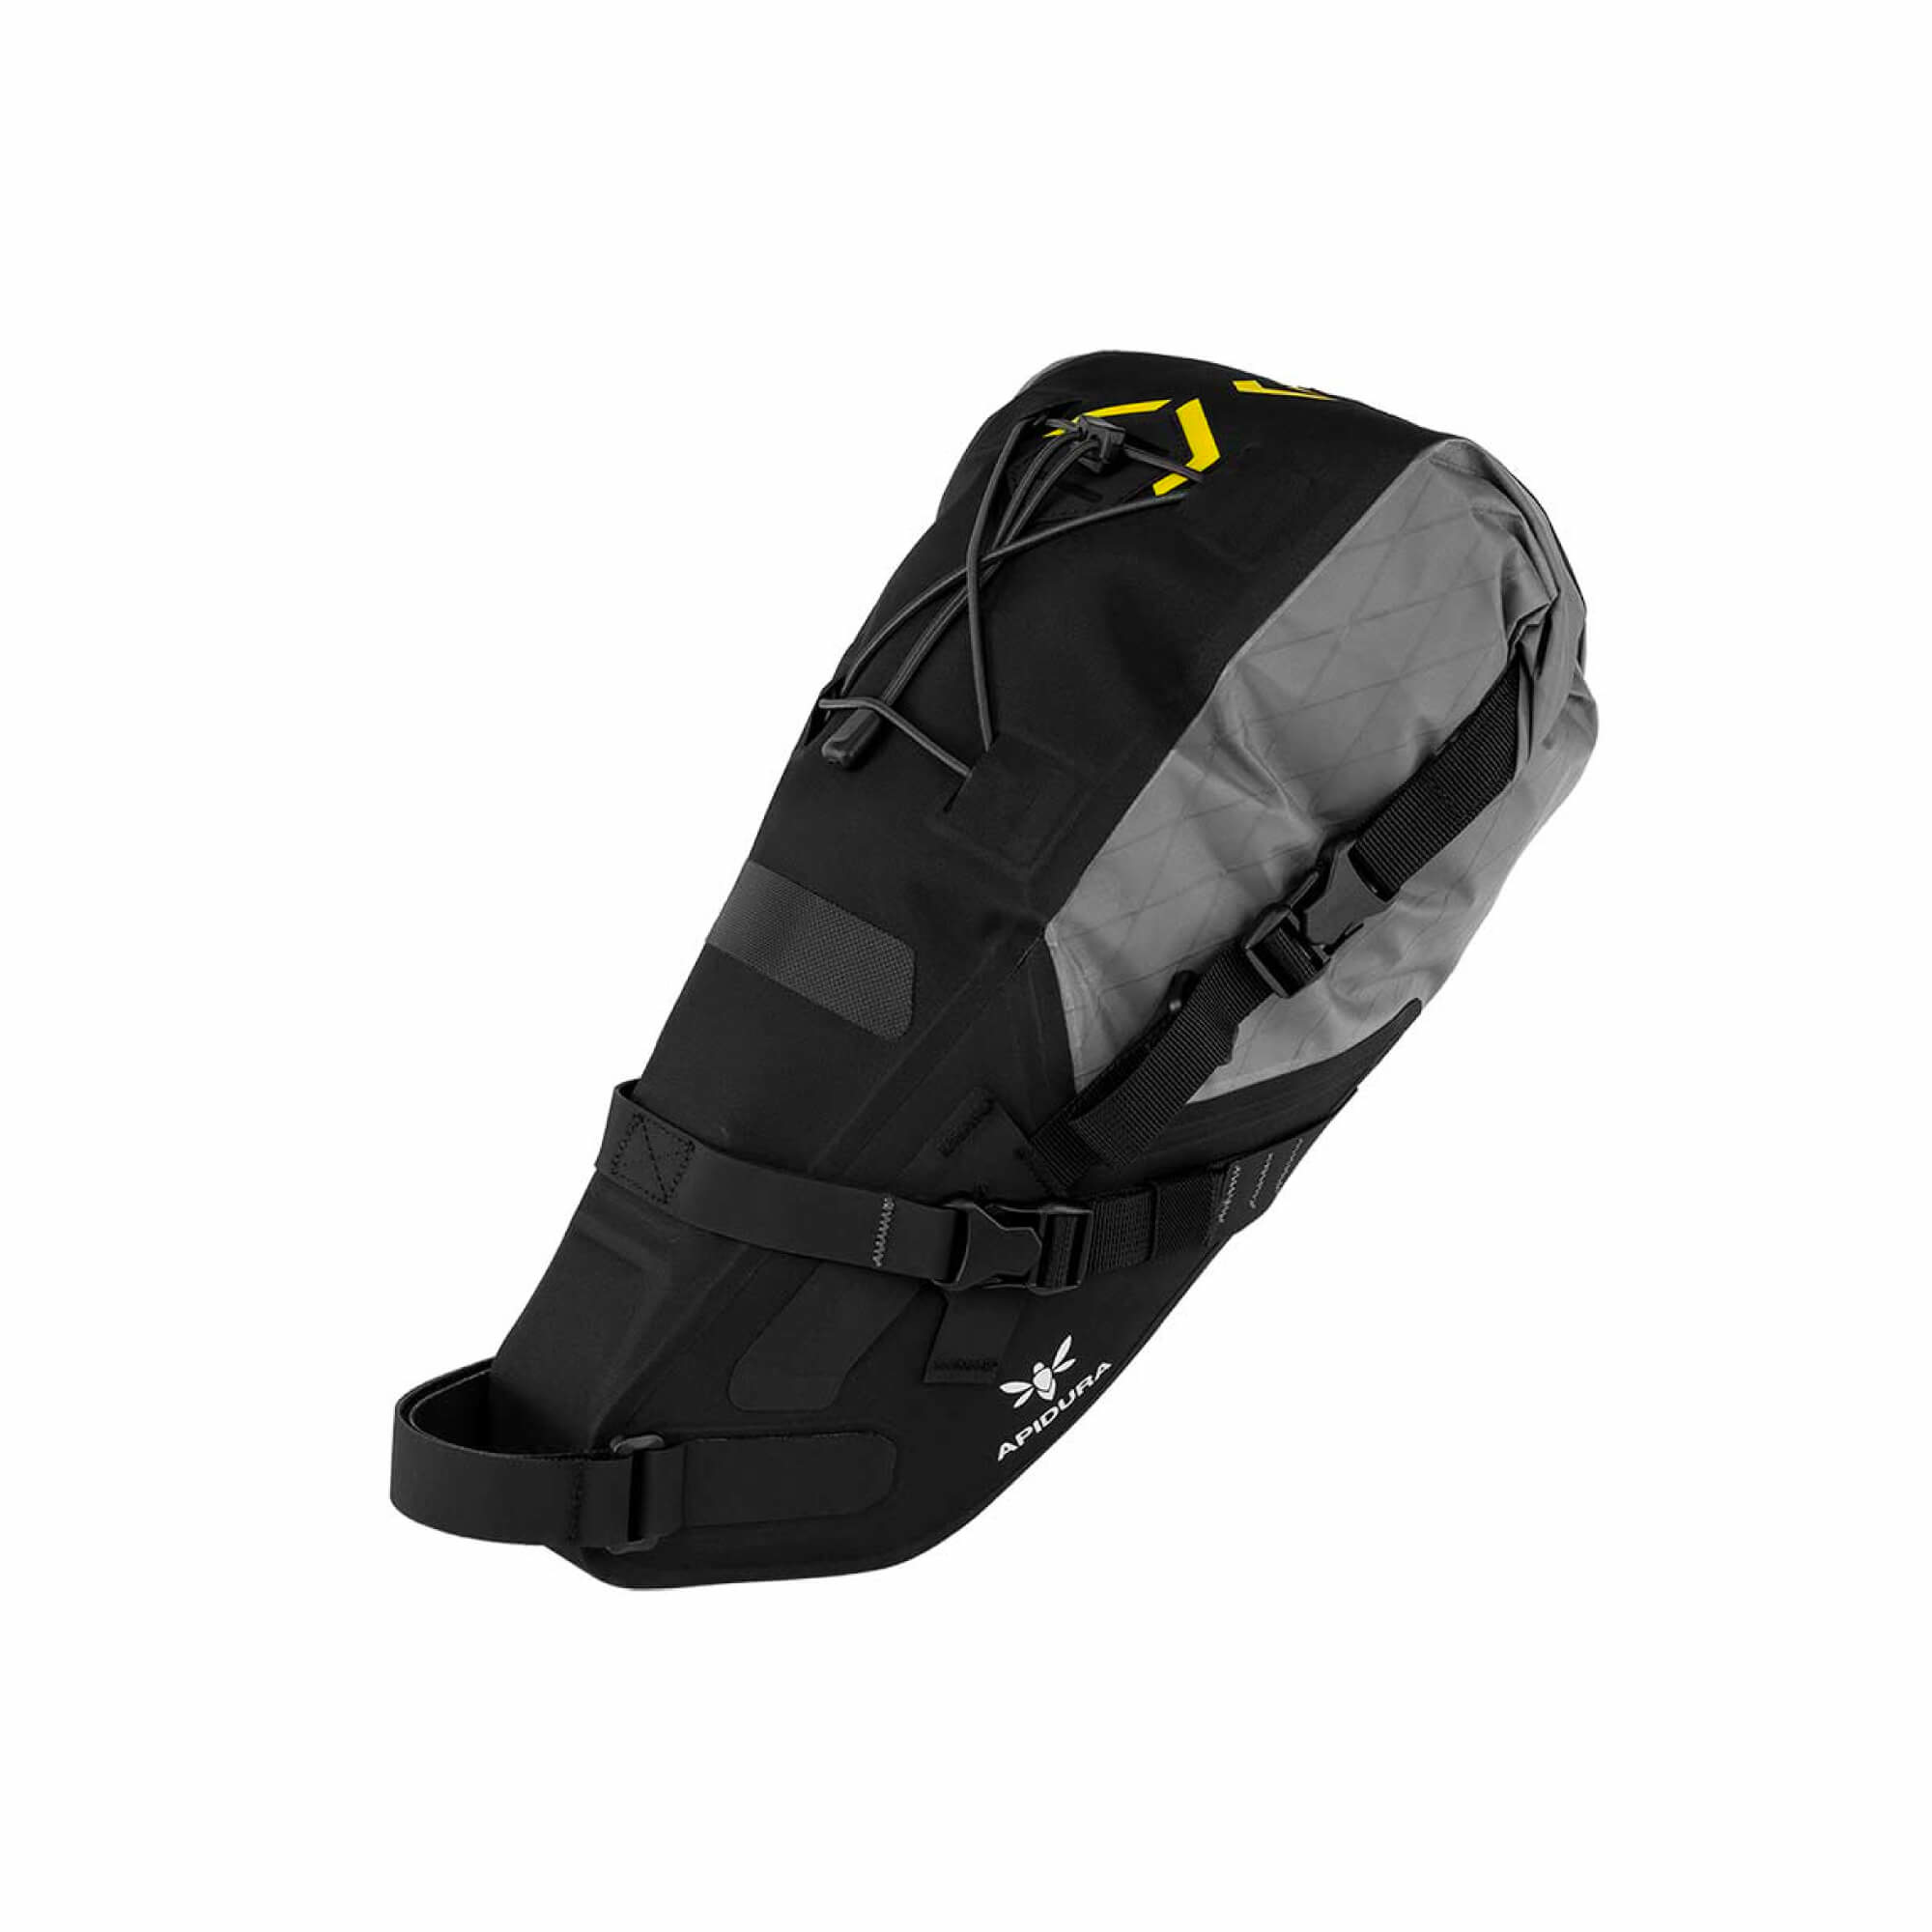 Backcountry2 Saddle Pack 6 L-2